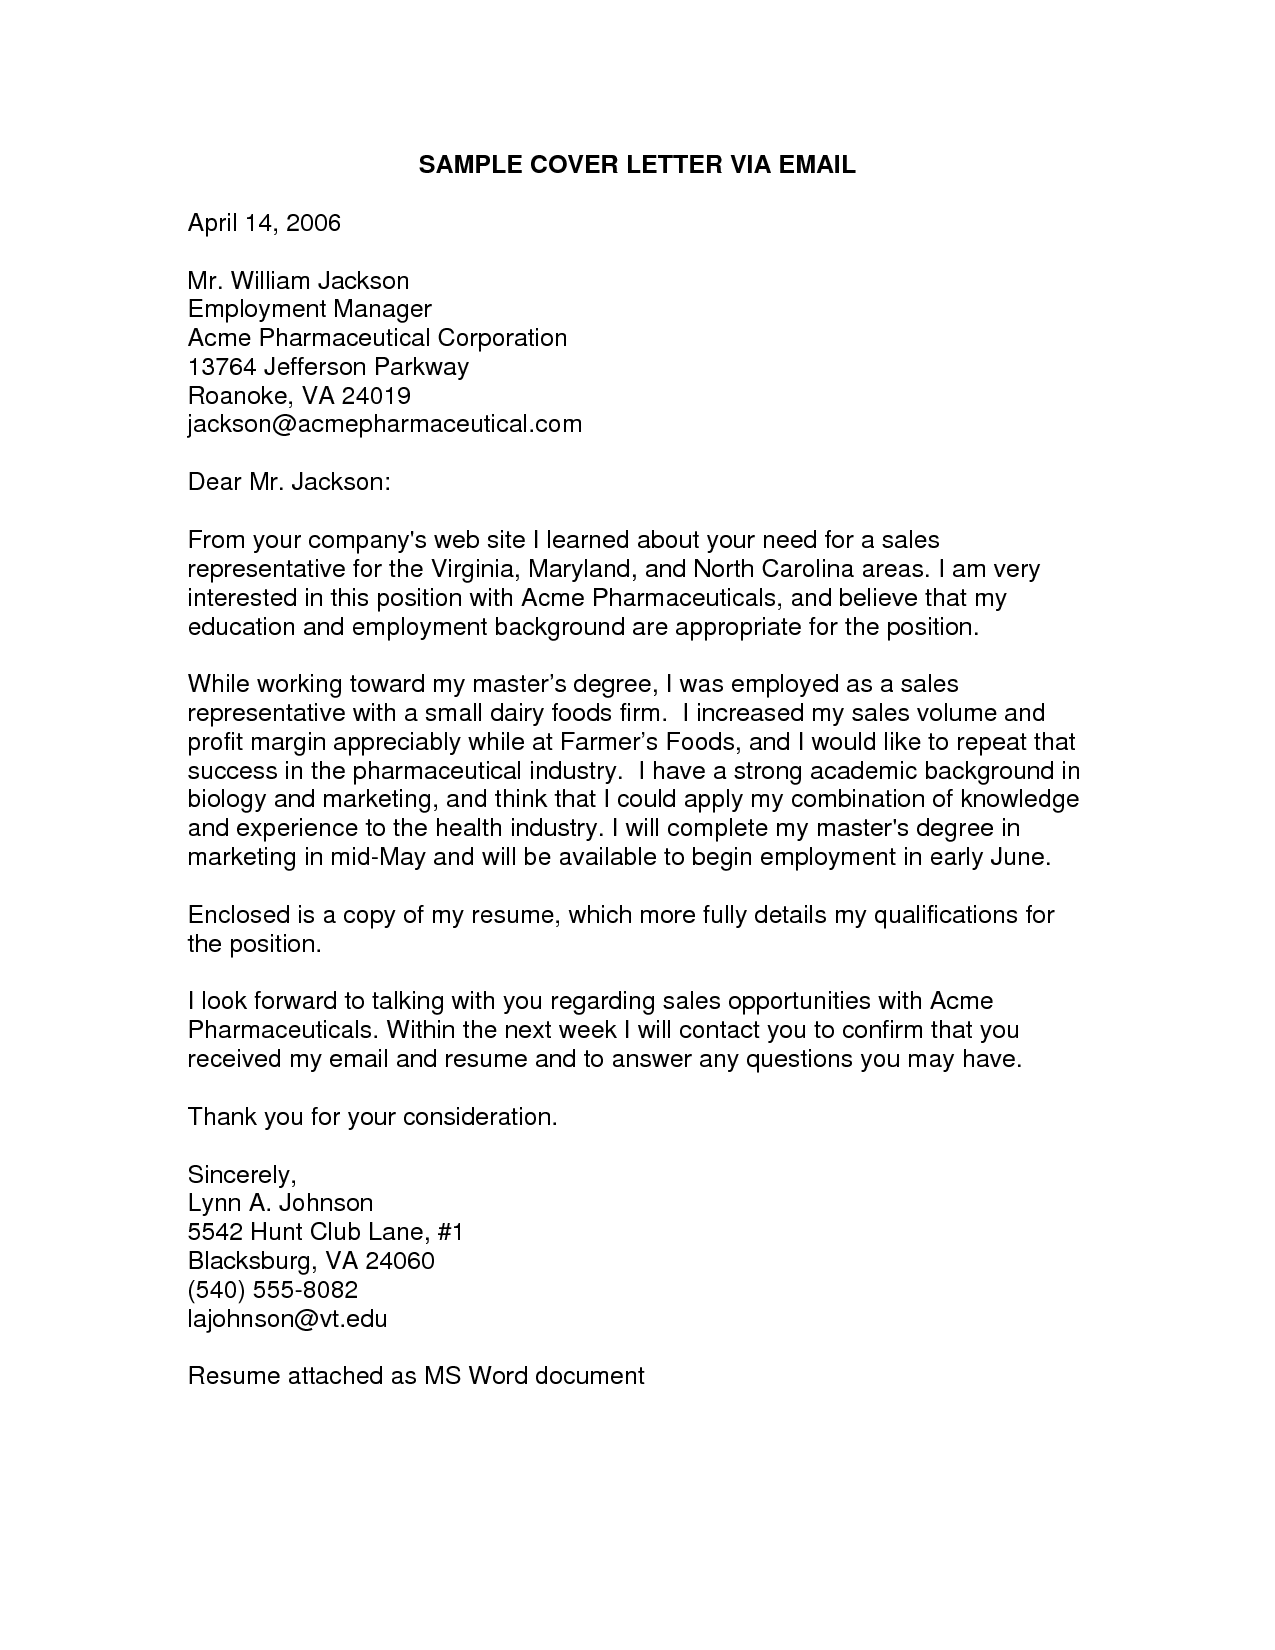 Cover Letter Template Via Email Cover letter for resume